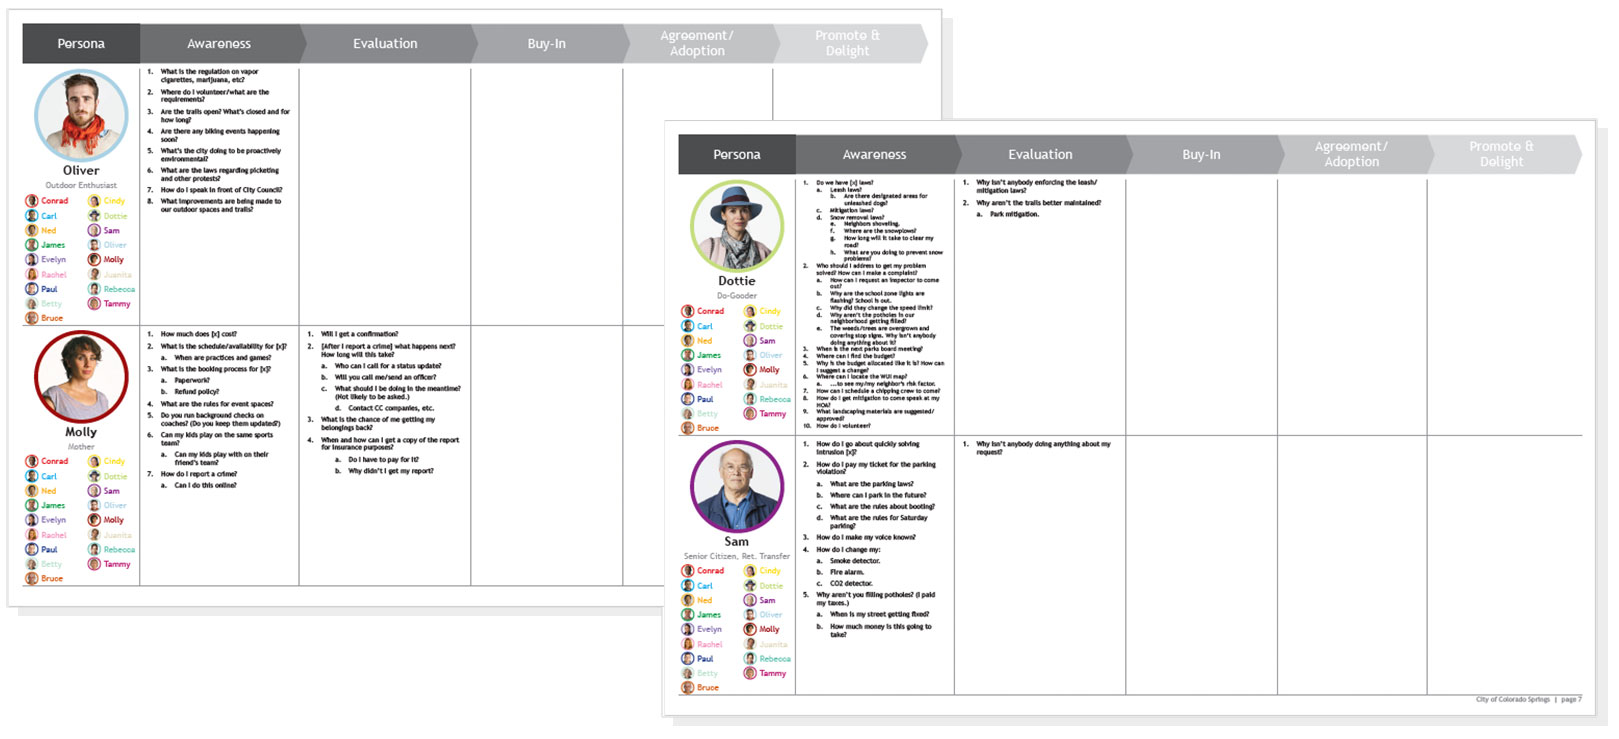 Example of personas overlay for City of Colorado Spings